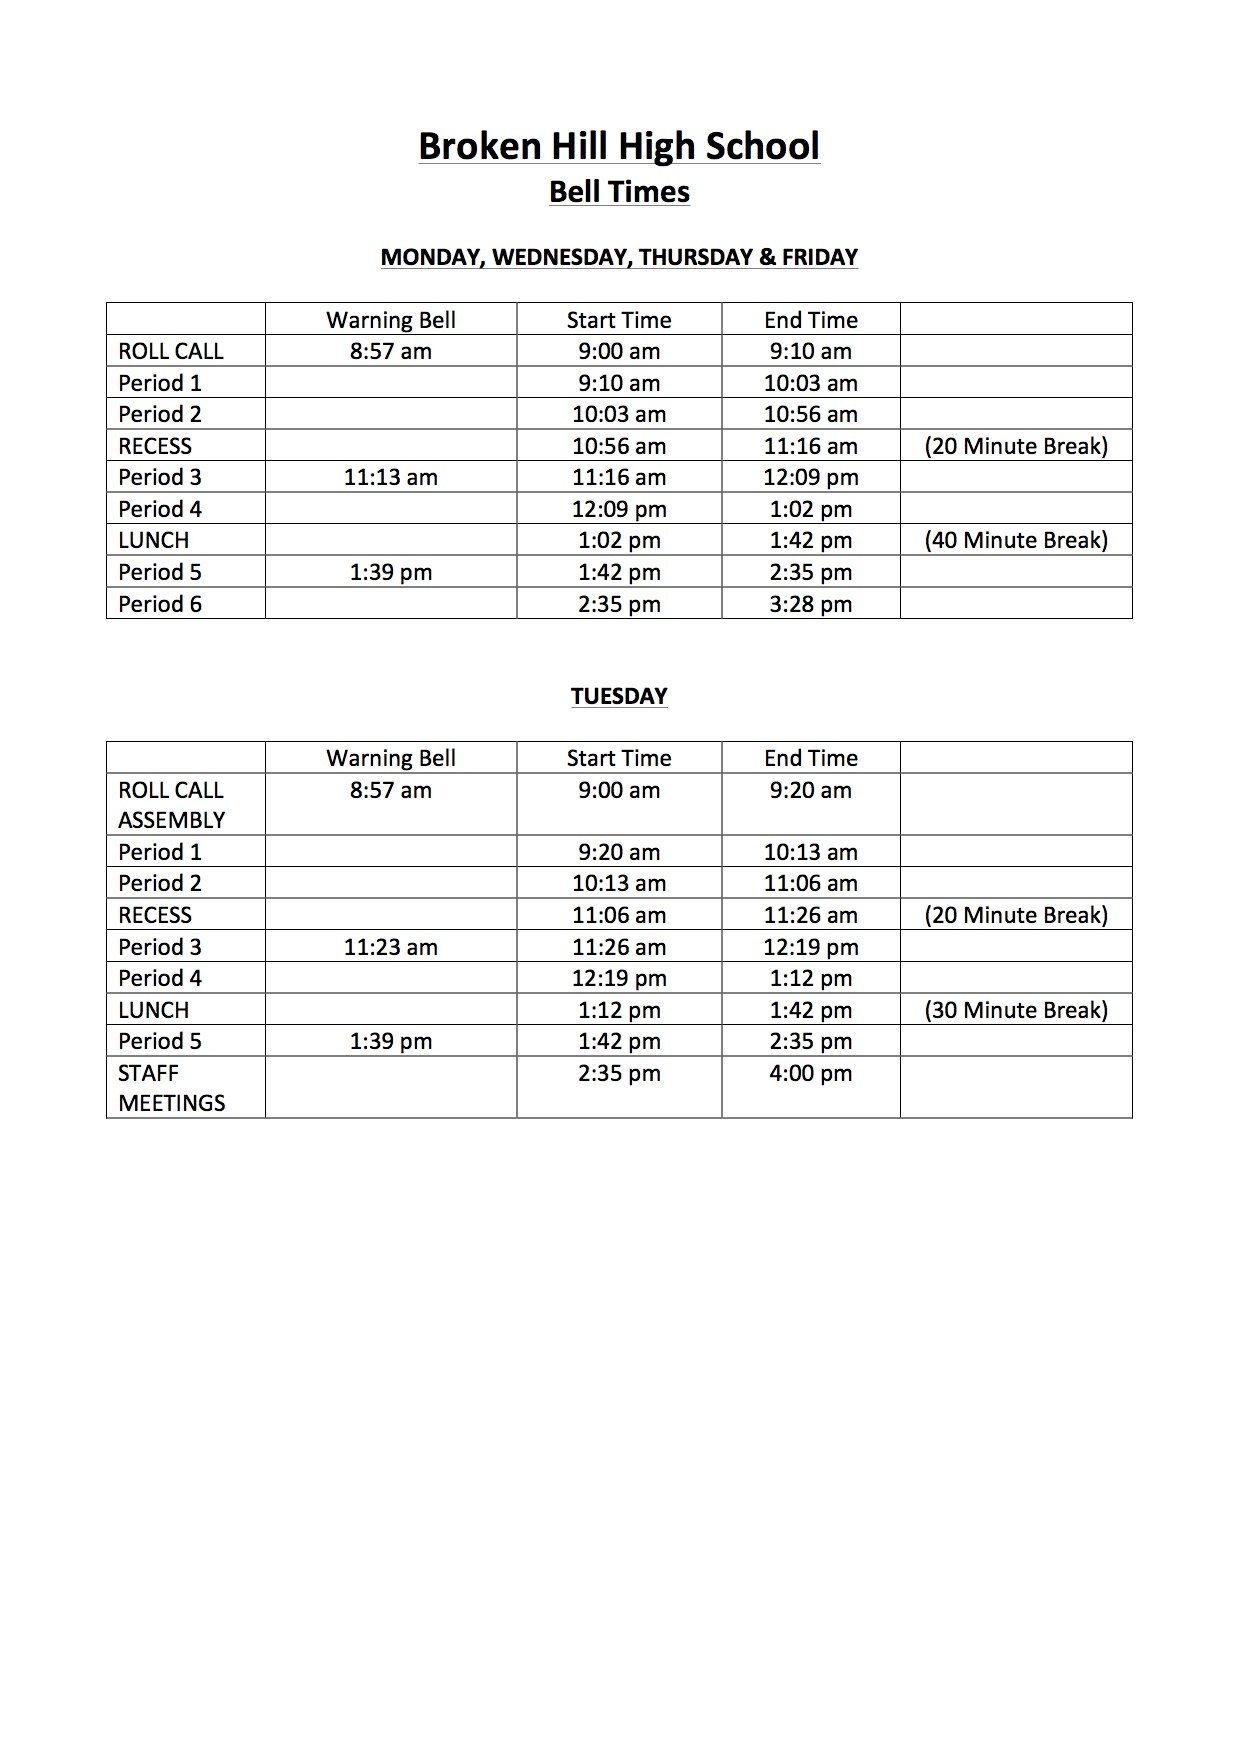 BHHS Bell Times